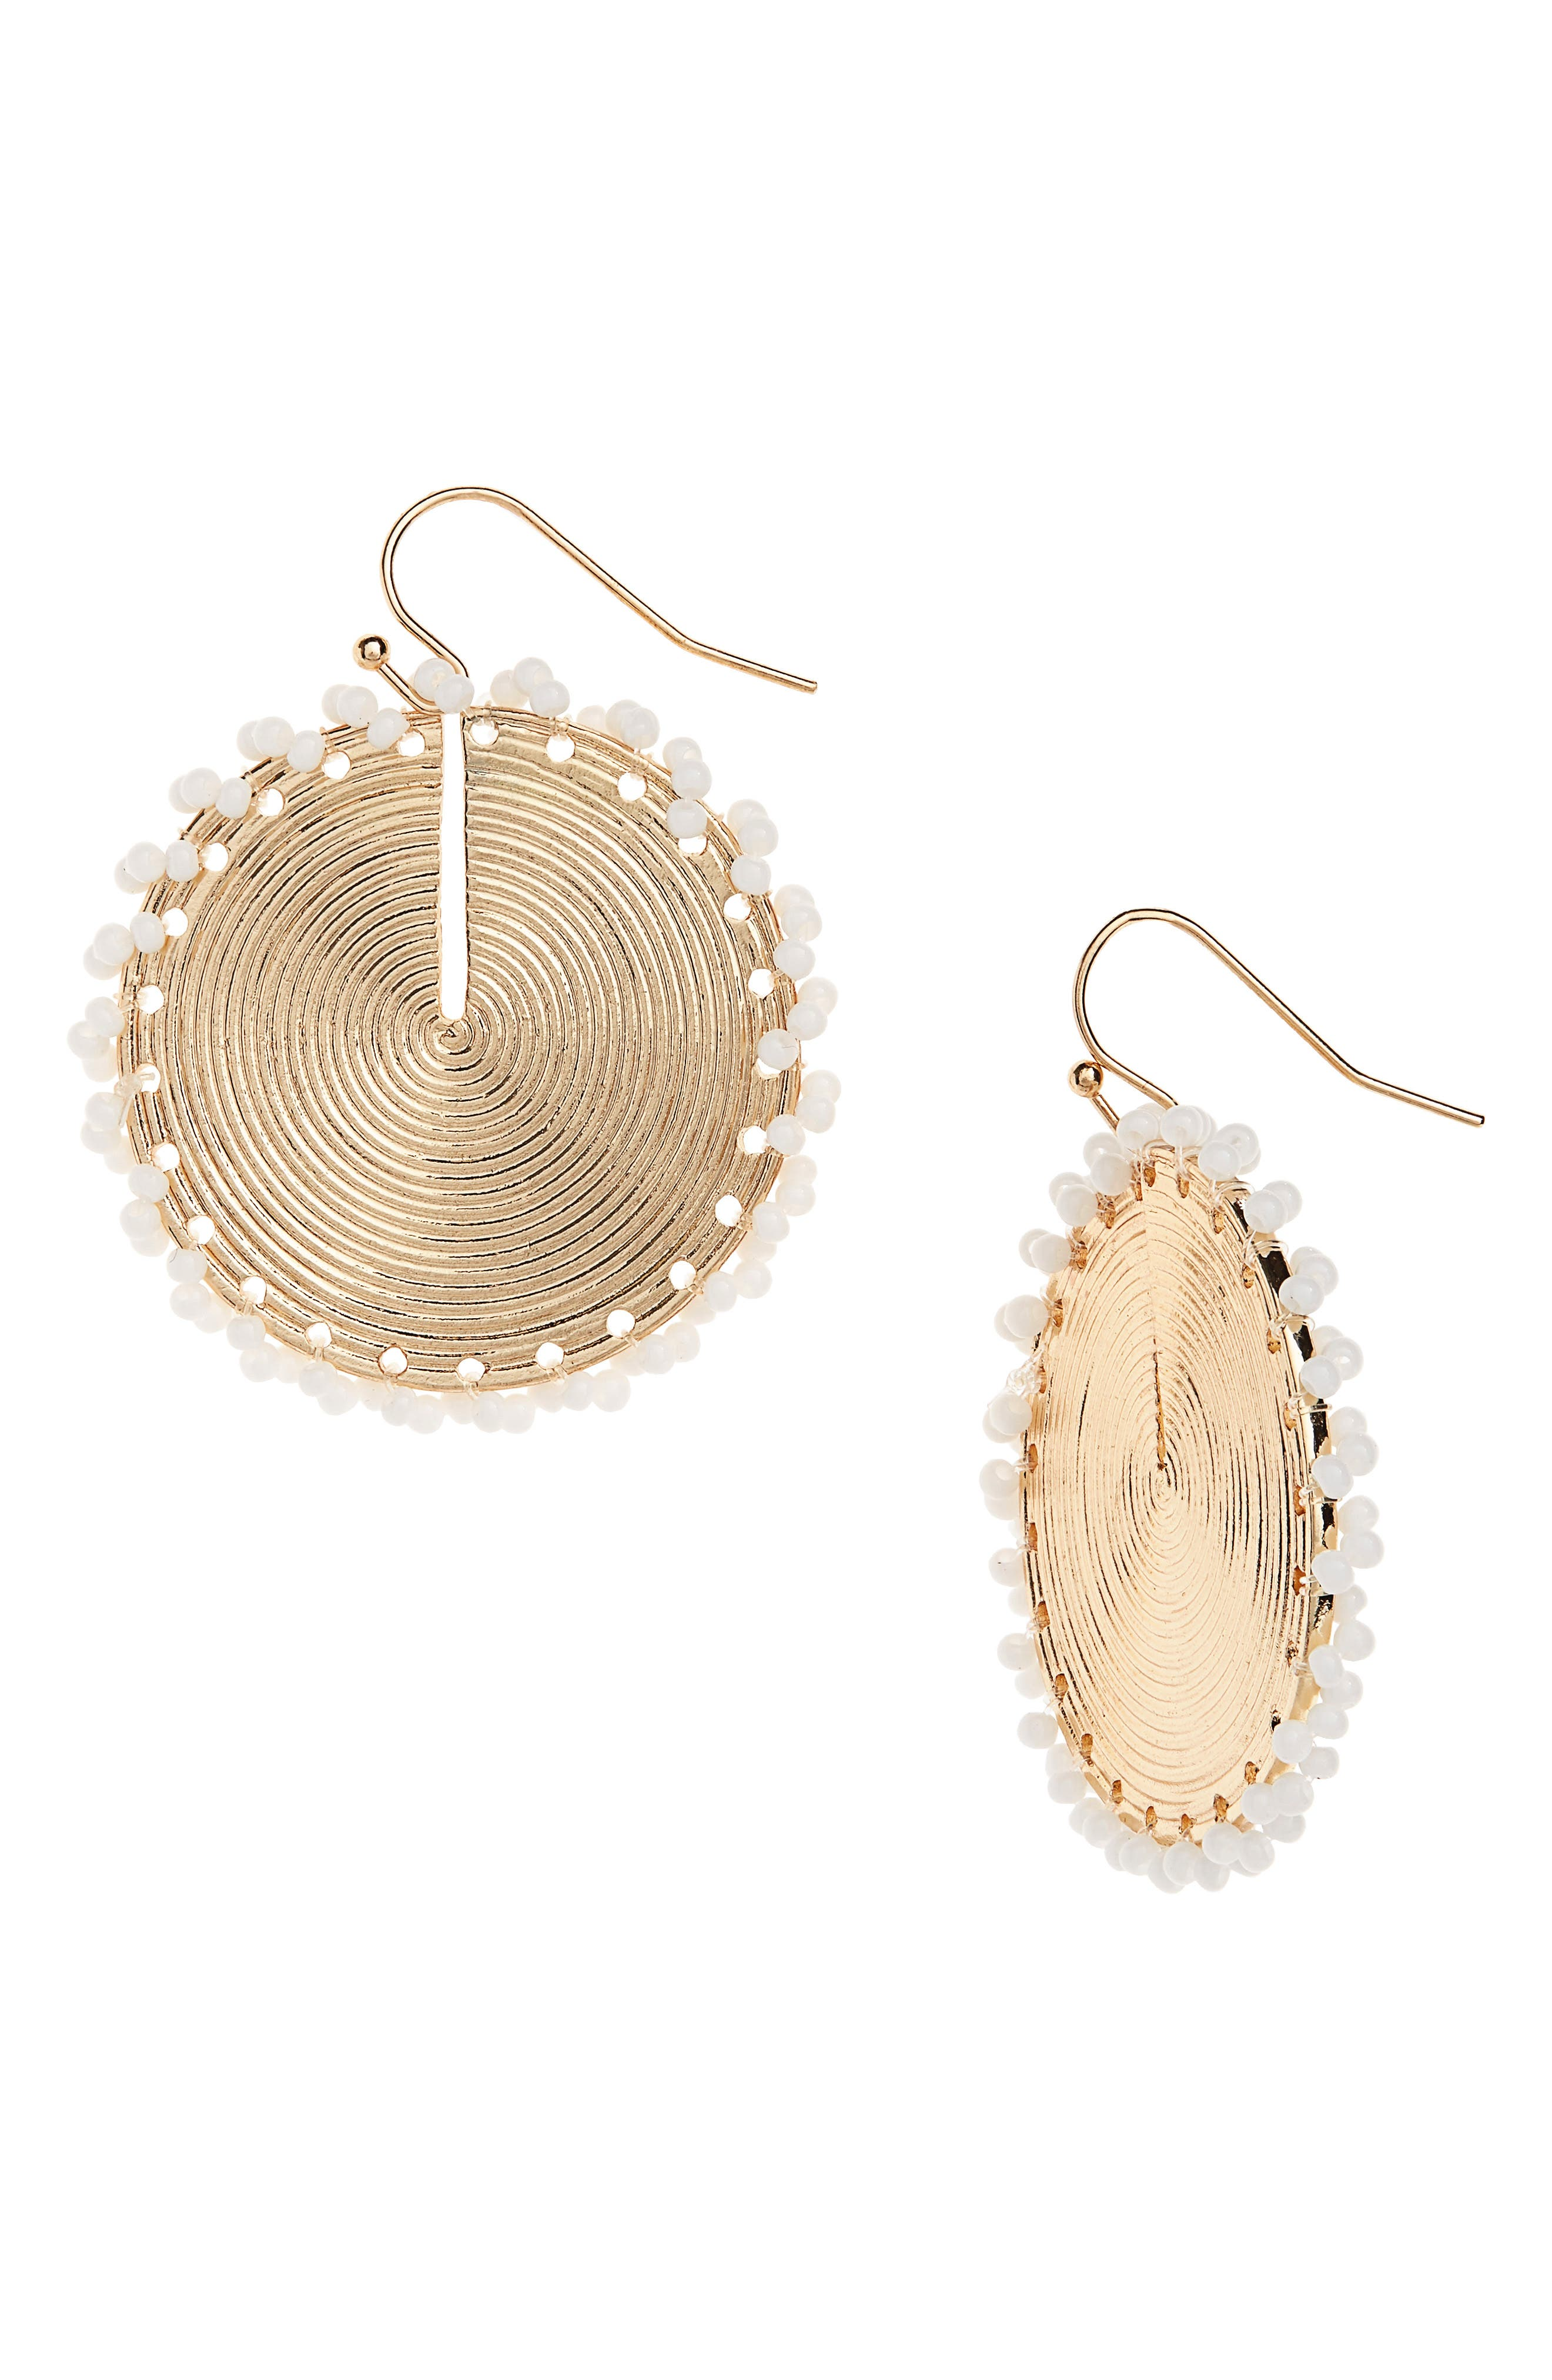 A spiral amps the shine of these disc-drop earrings traced by tiny little beads for fun texture. Style Name: Bp. Seed Bead Disc Drop Earrings. Style Number: 6006951. Available in stores.